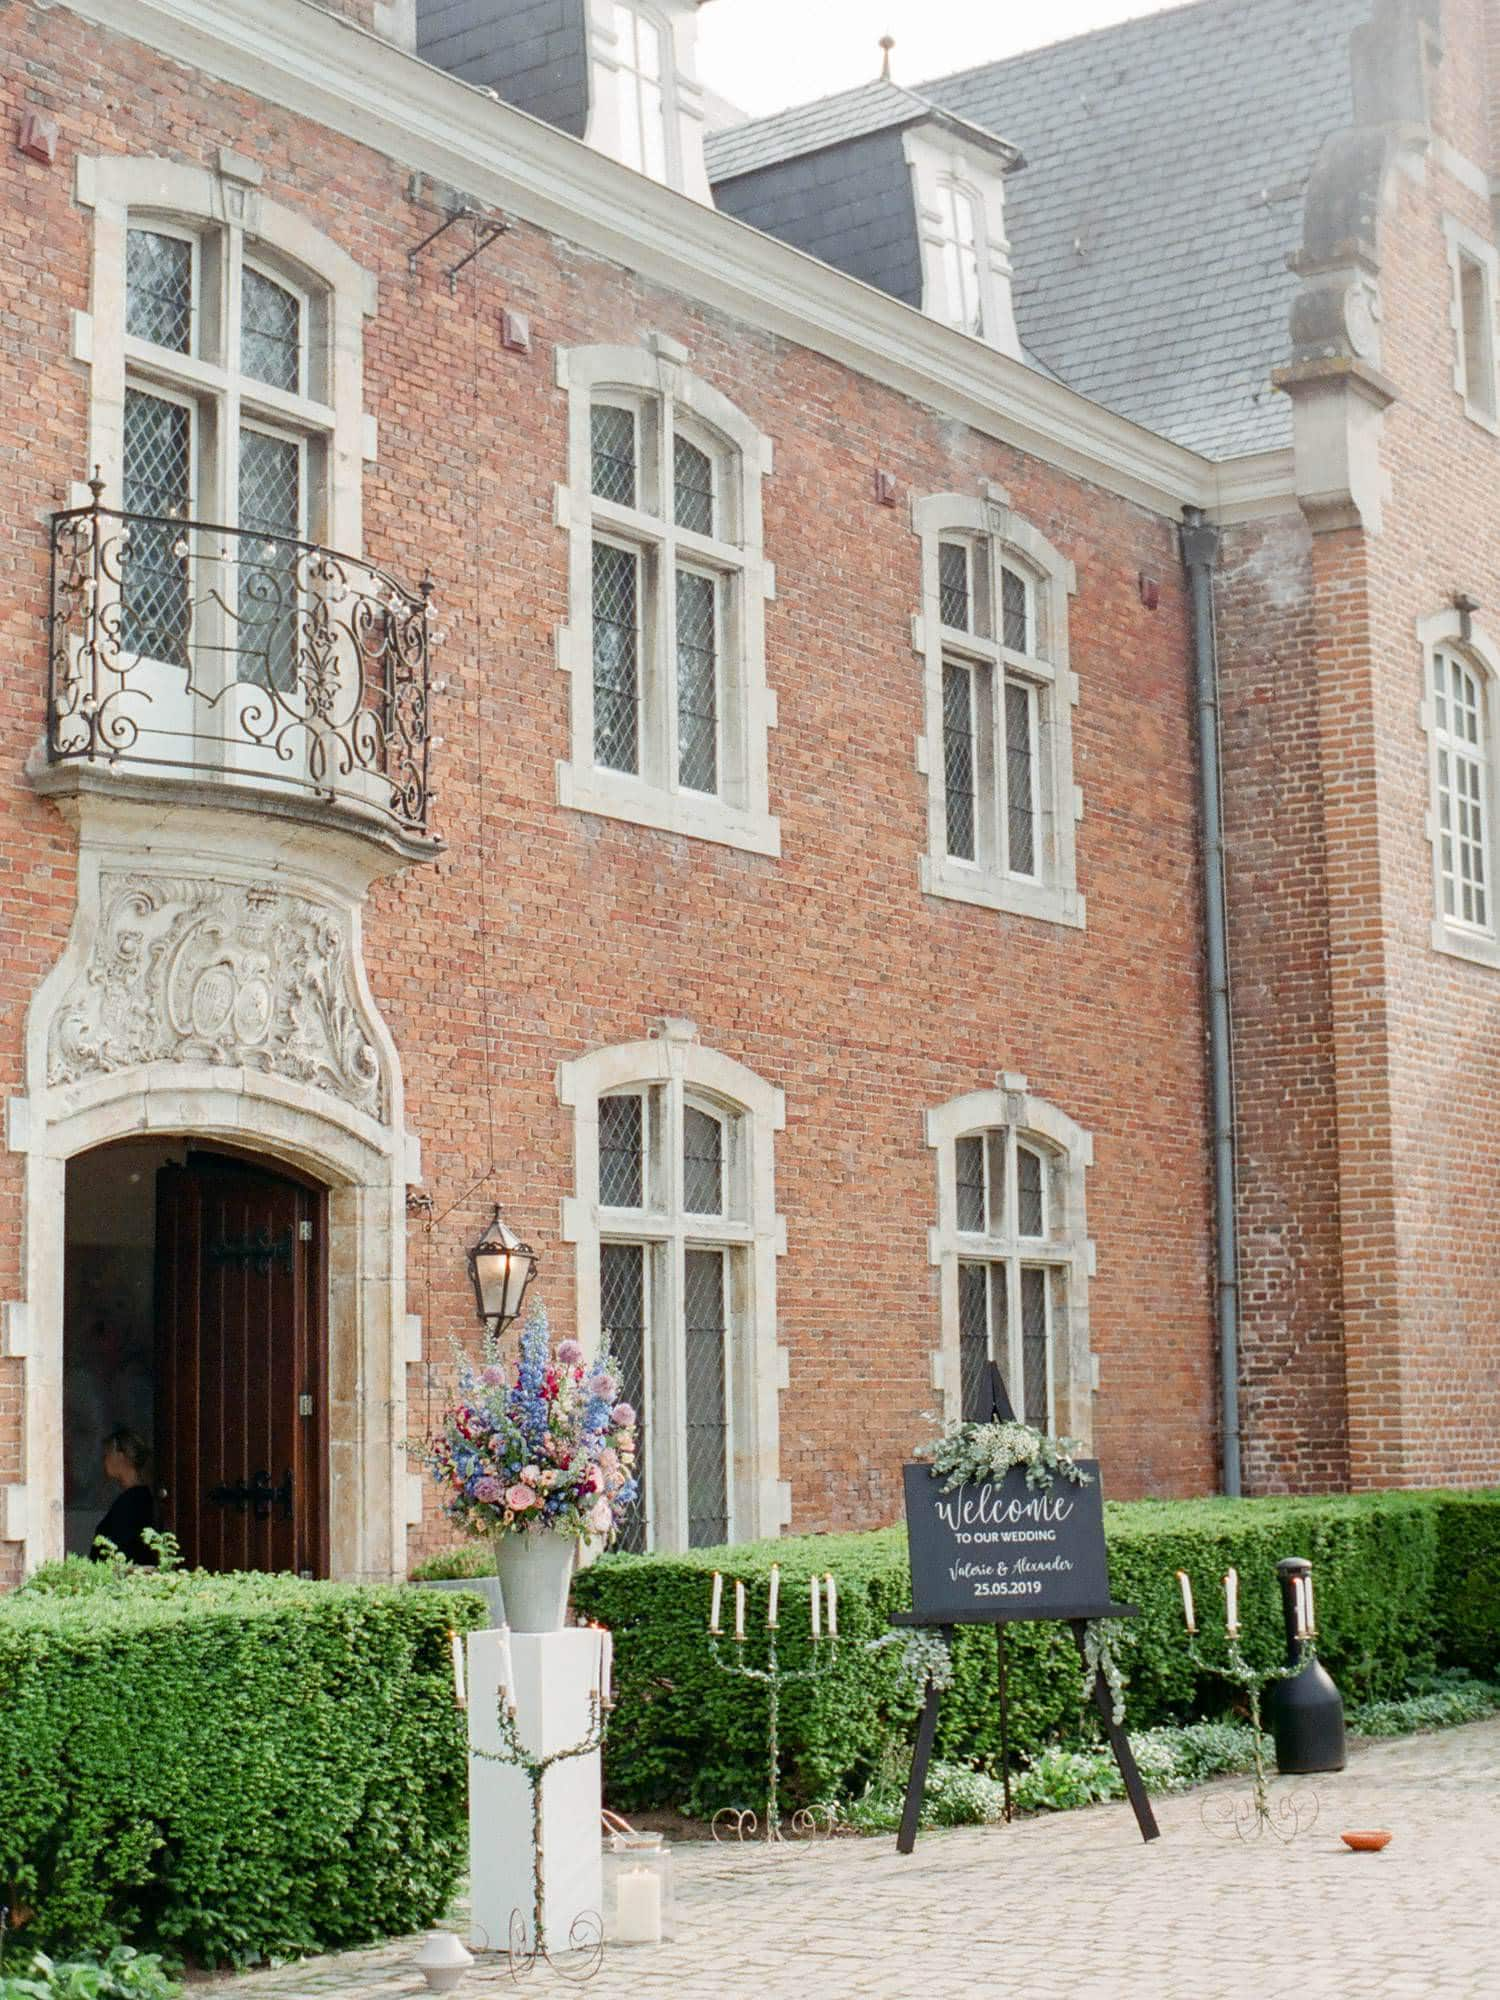 Heelijckyt Van Elsmeren - wedding venue